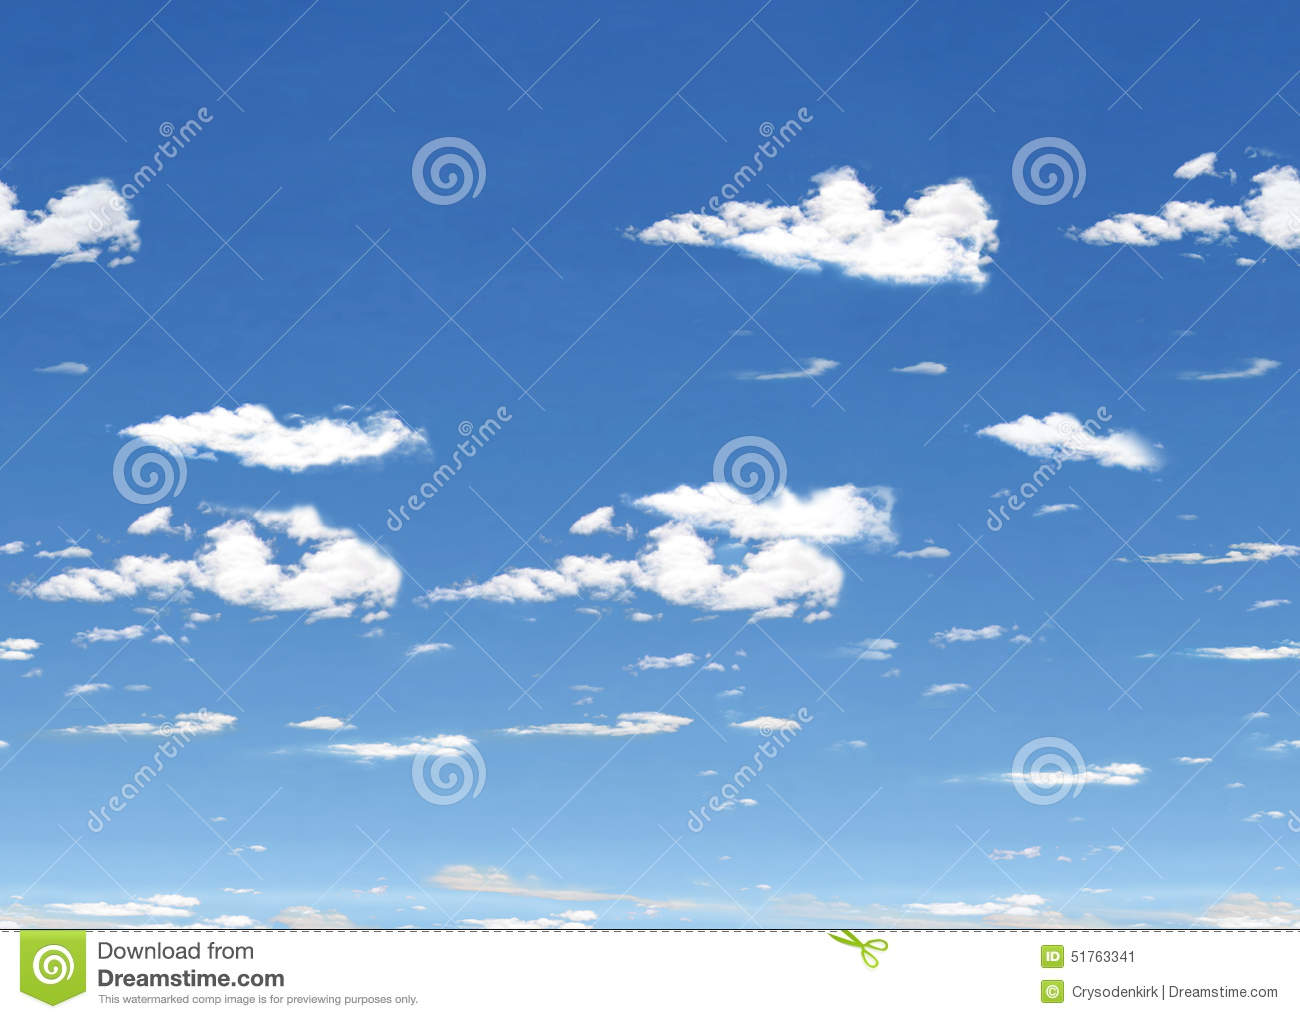 Blue Sky with Clouds Horizontal Tile